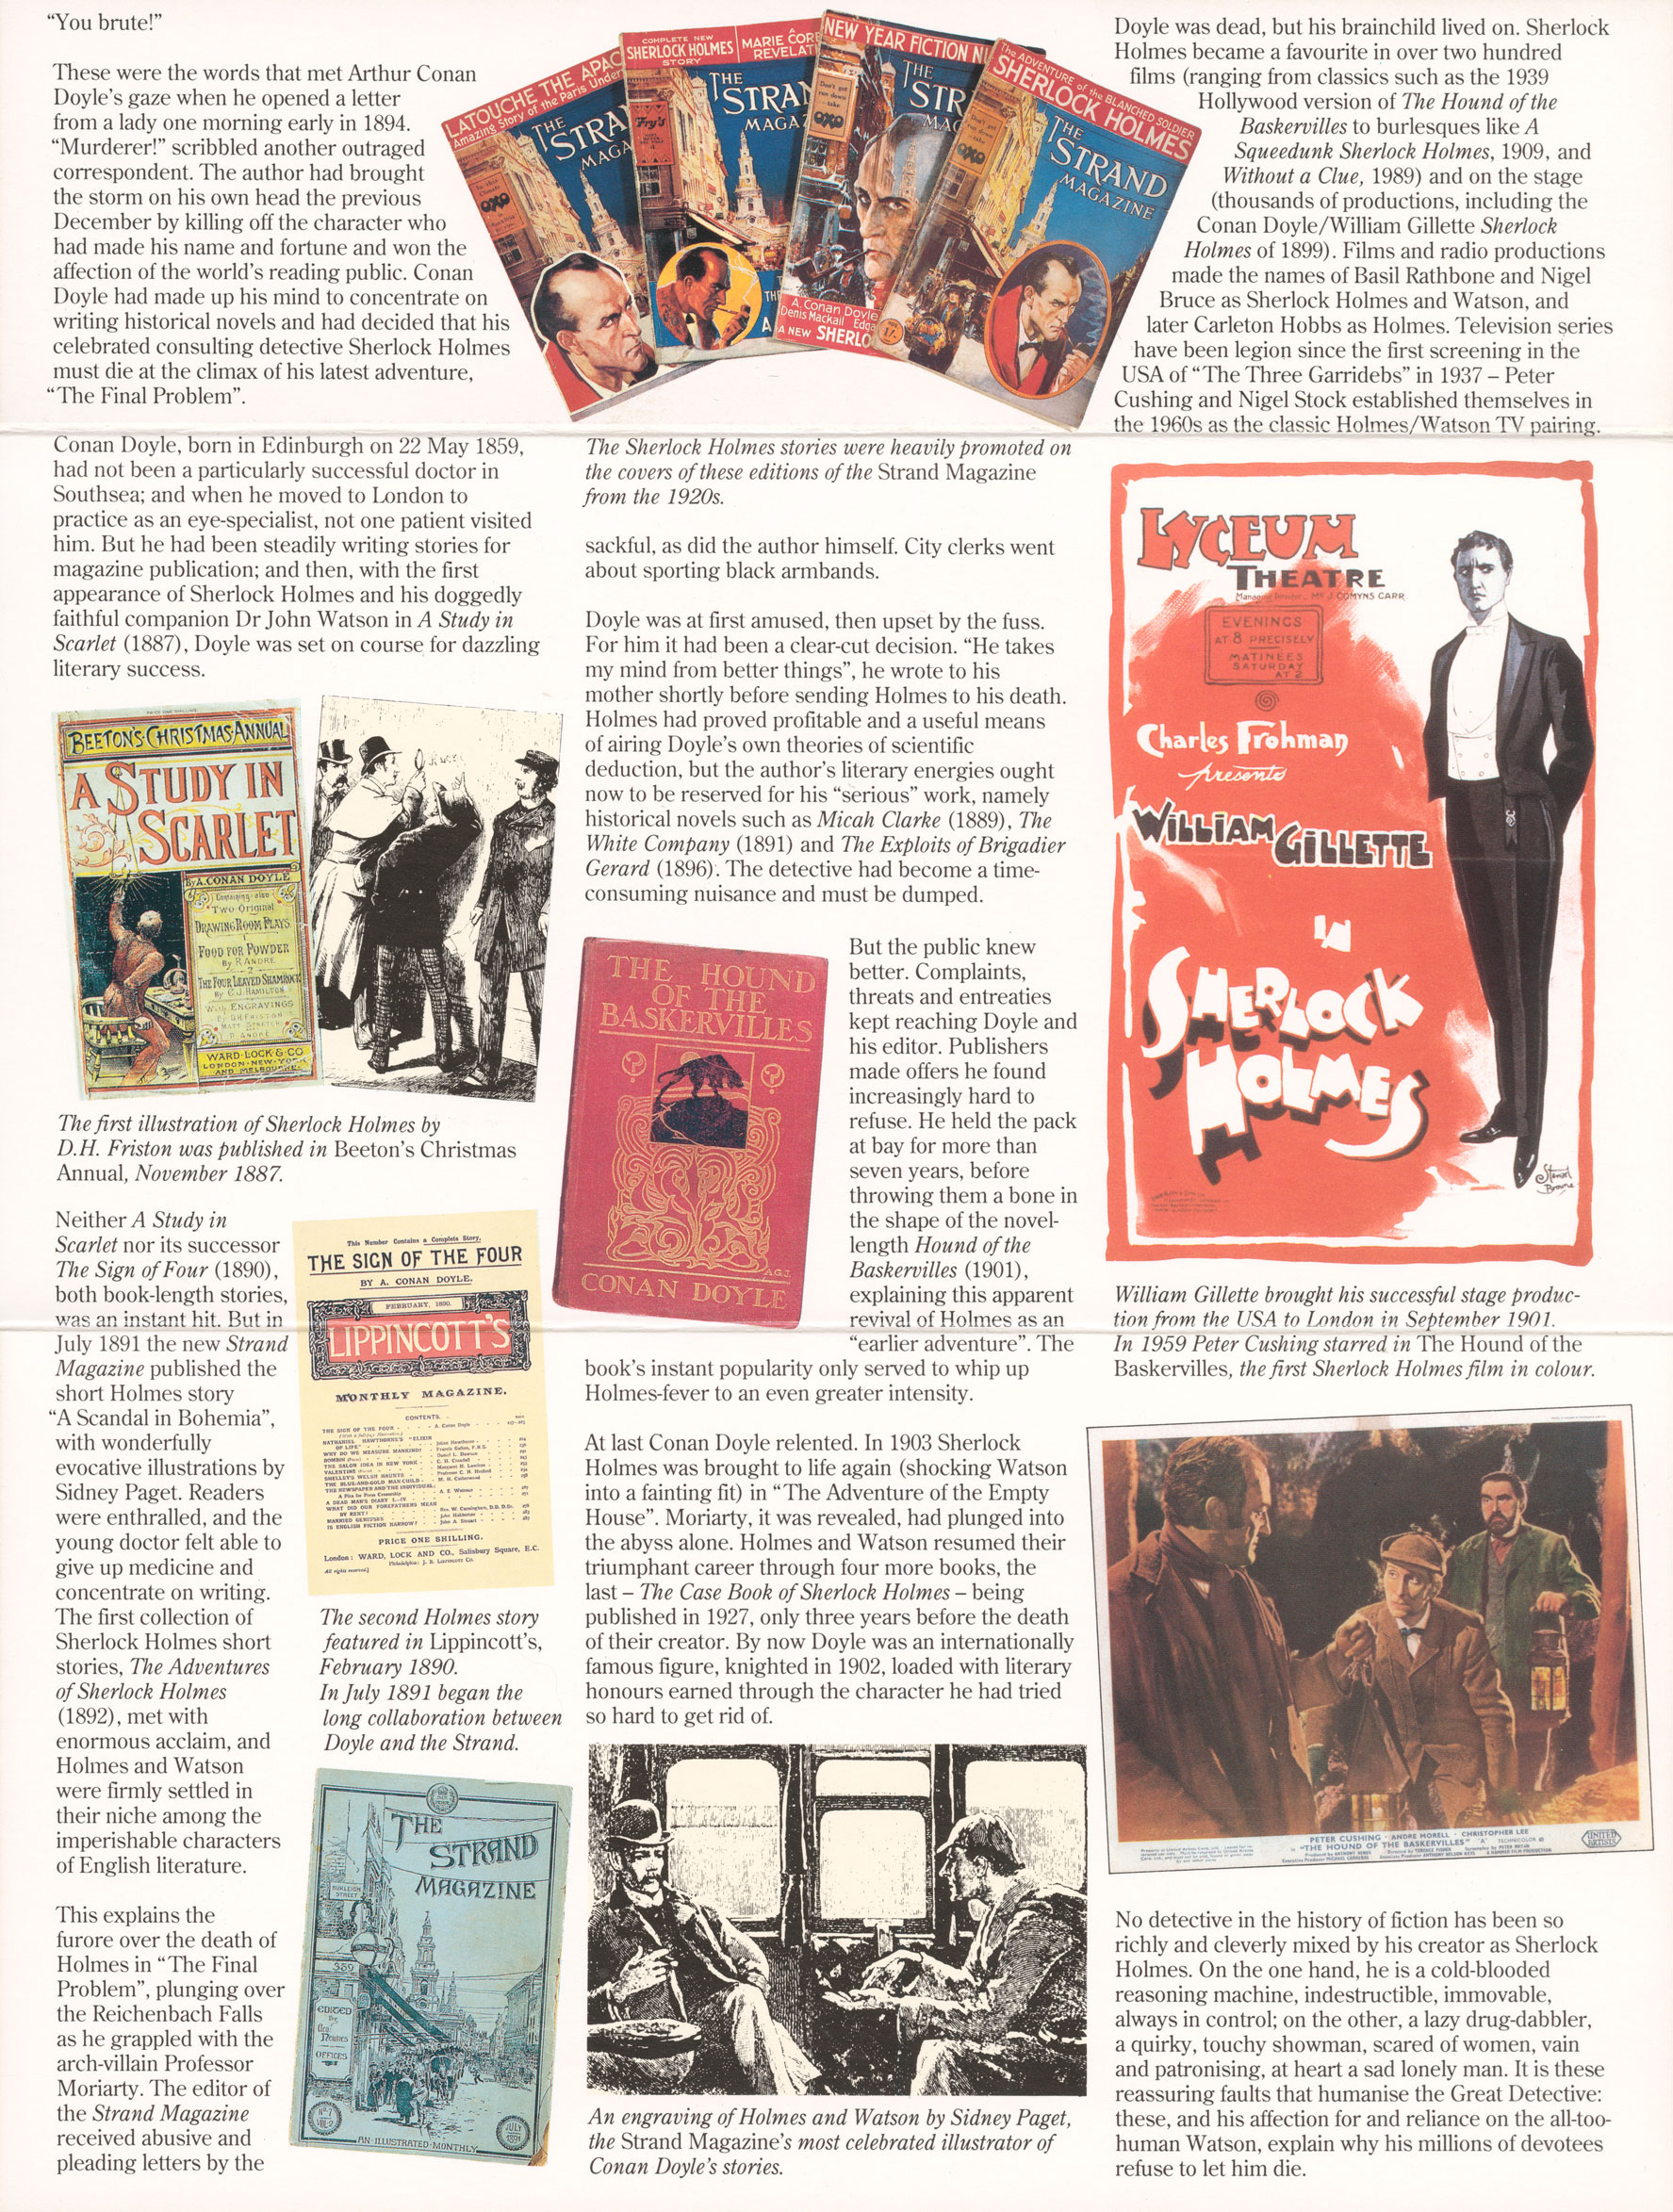 Images and text from the inside of the Sherlock Holmes presentation pack.